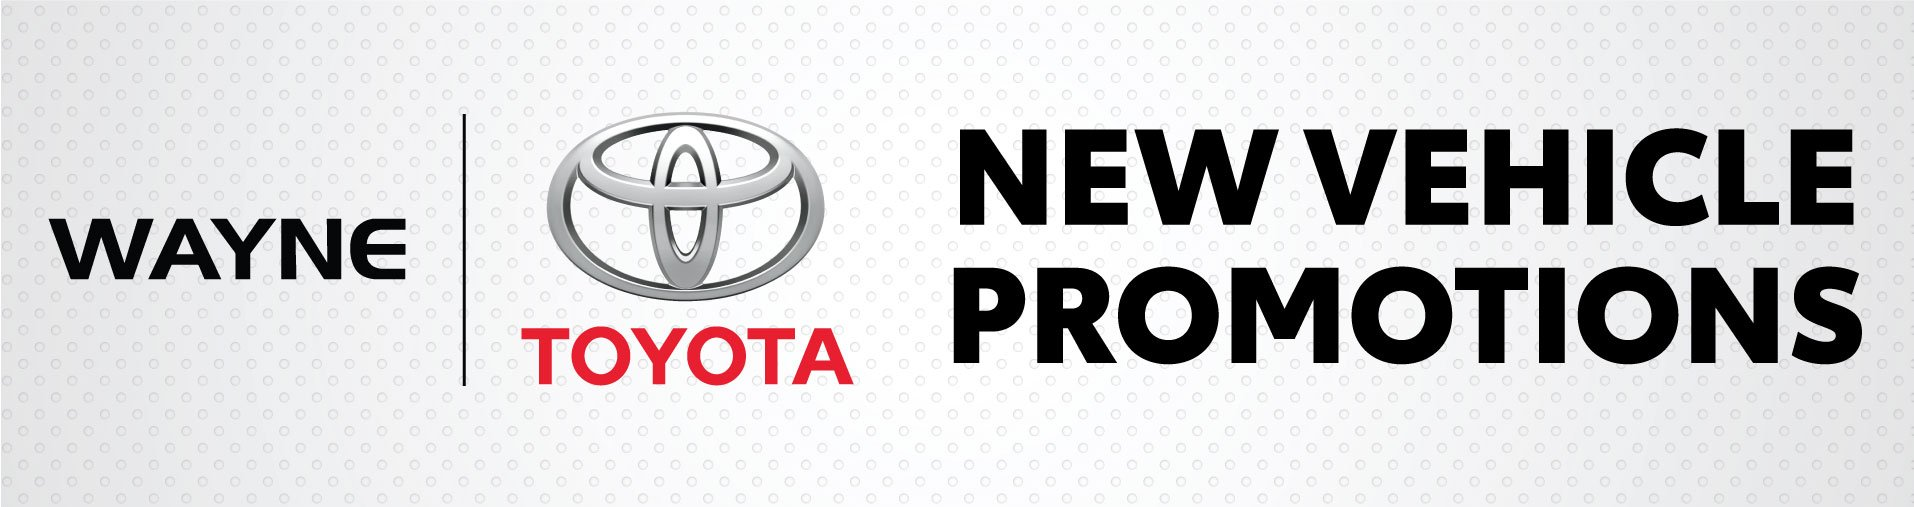 Wayne Toyota New Vehicle Promotions Banner